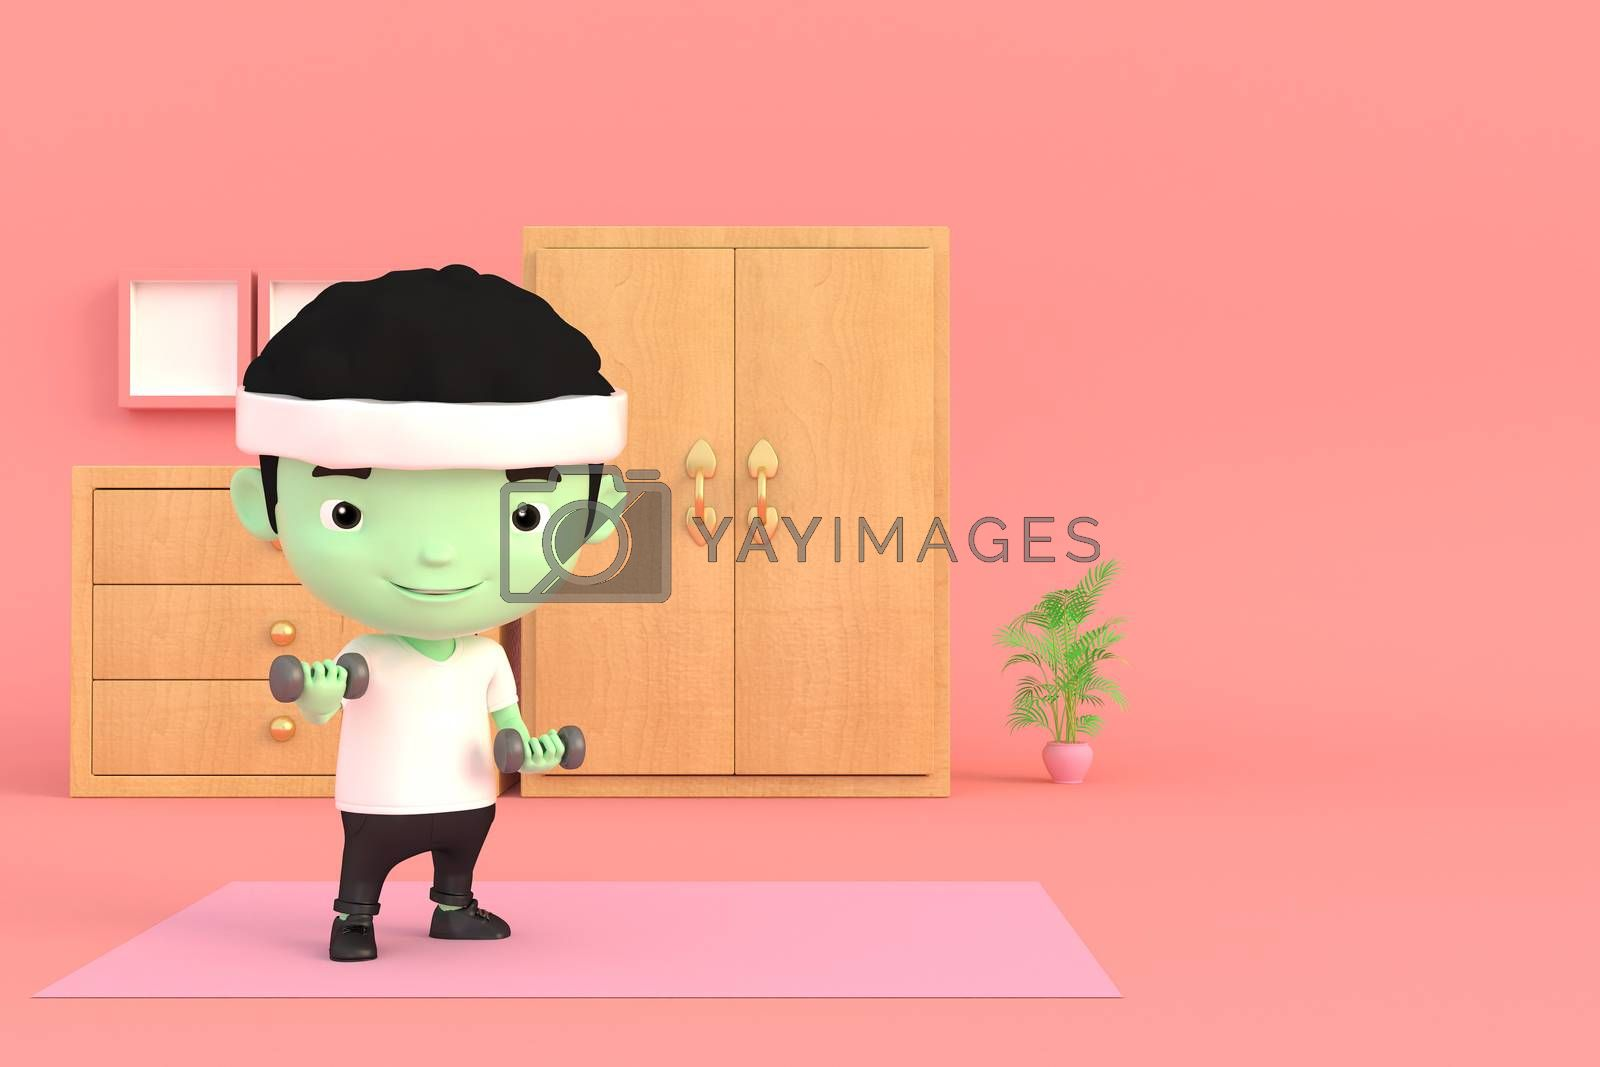 3d illustrator of cartoon characters. A man exercising by lifting dumbbells